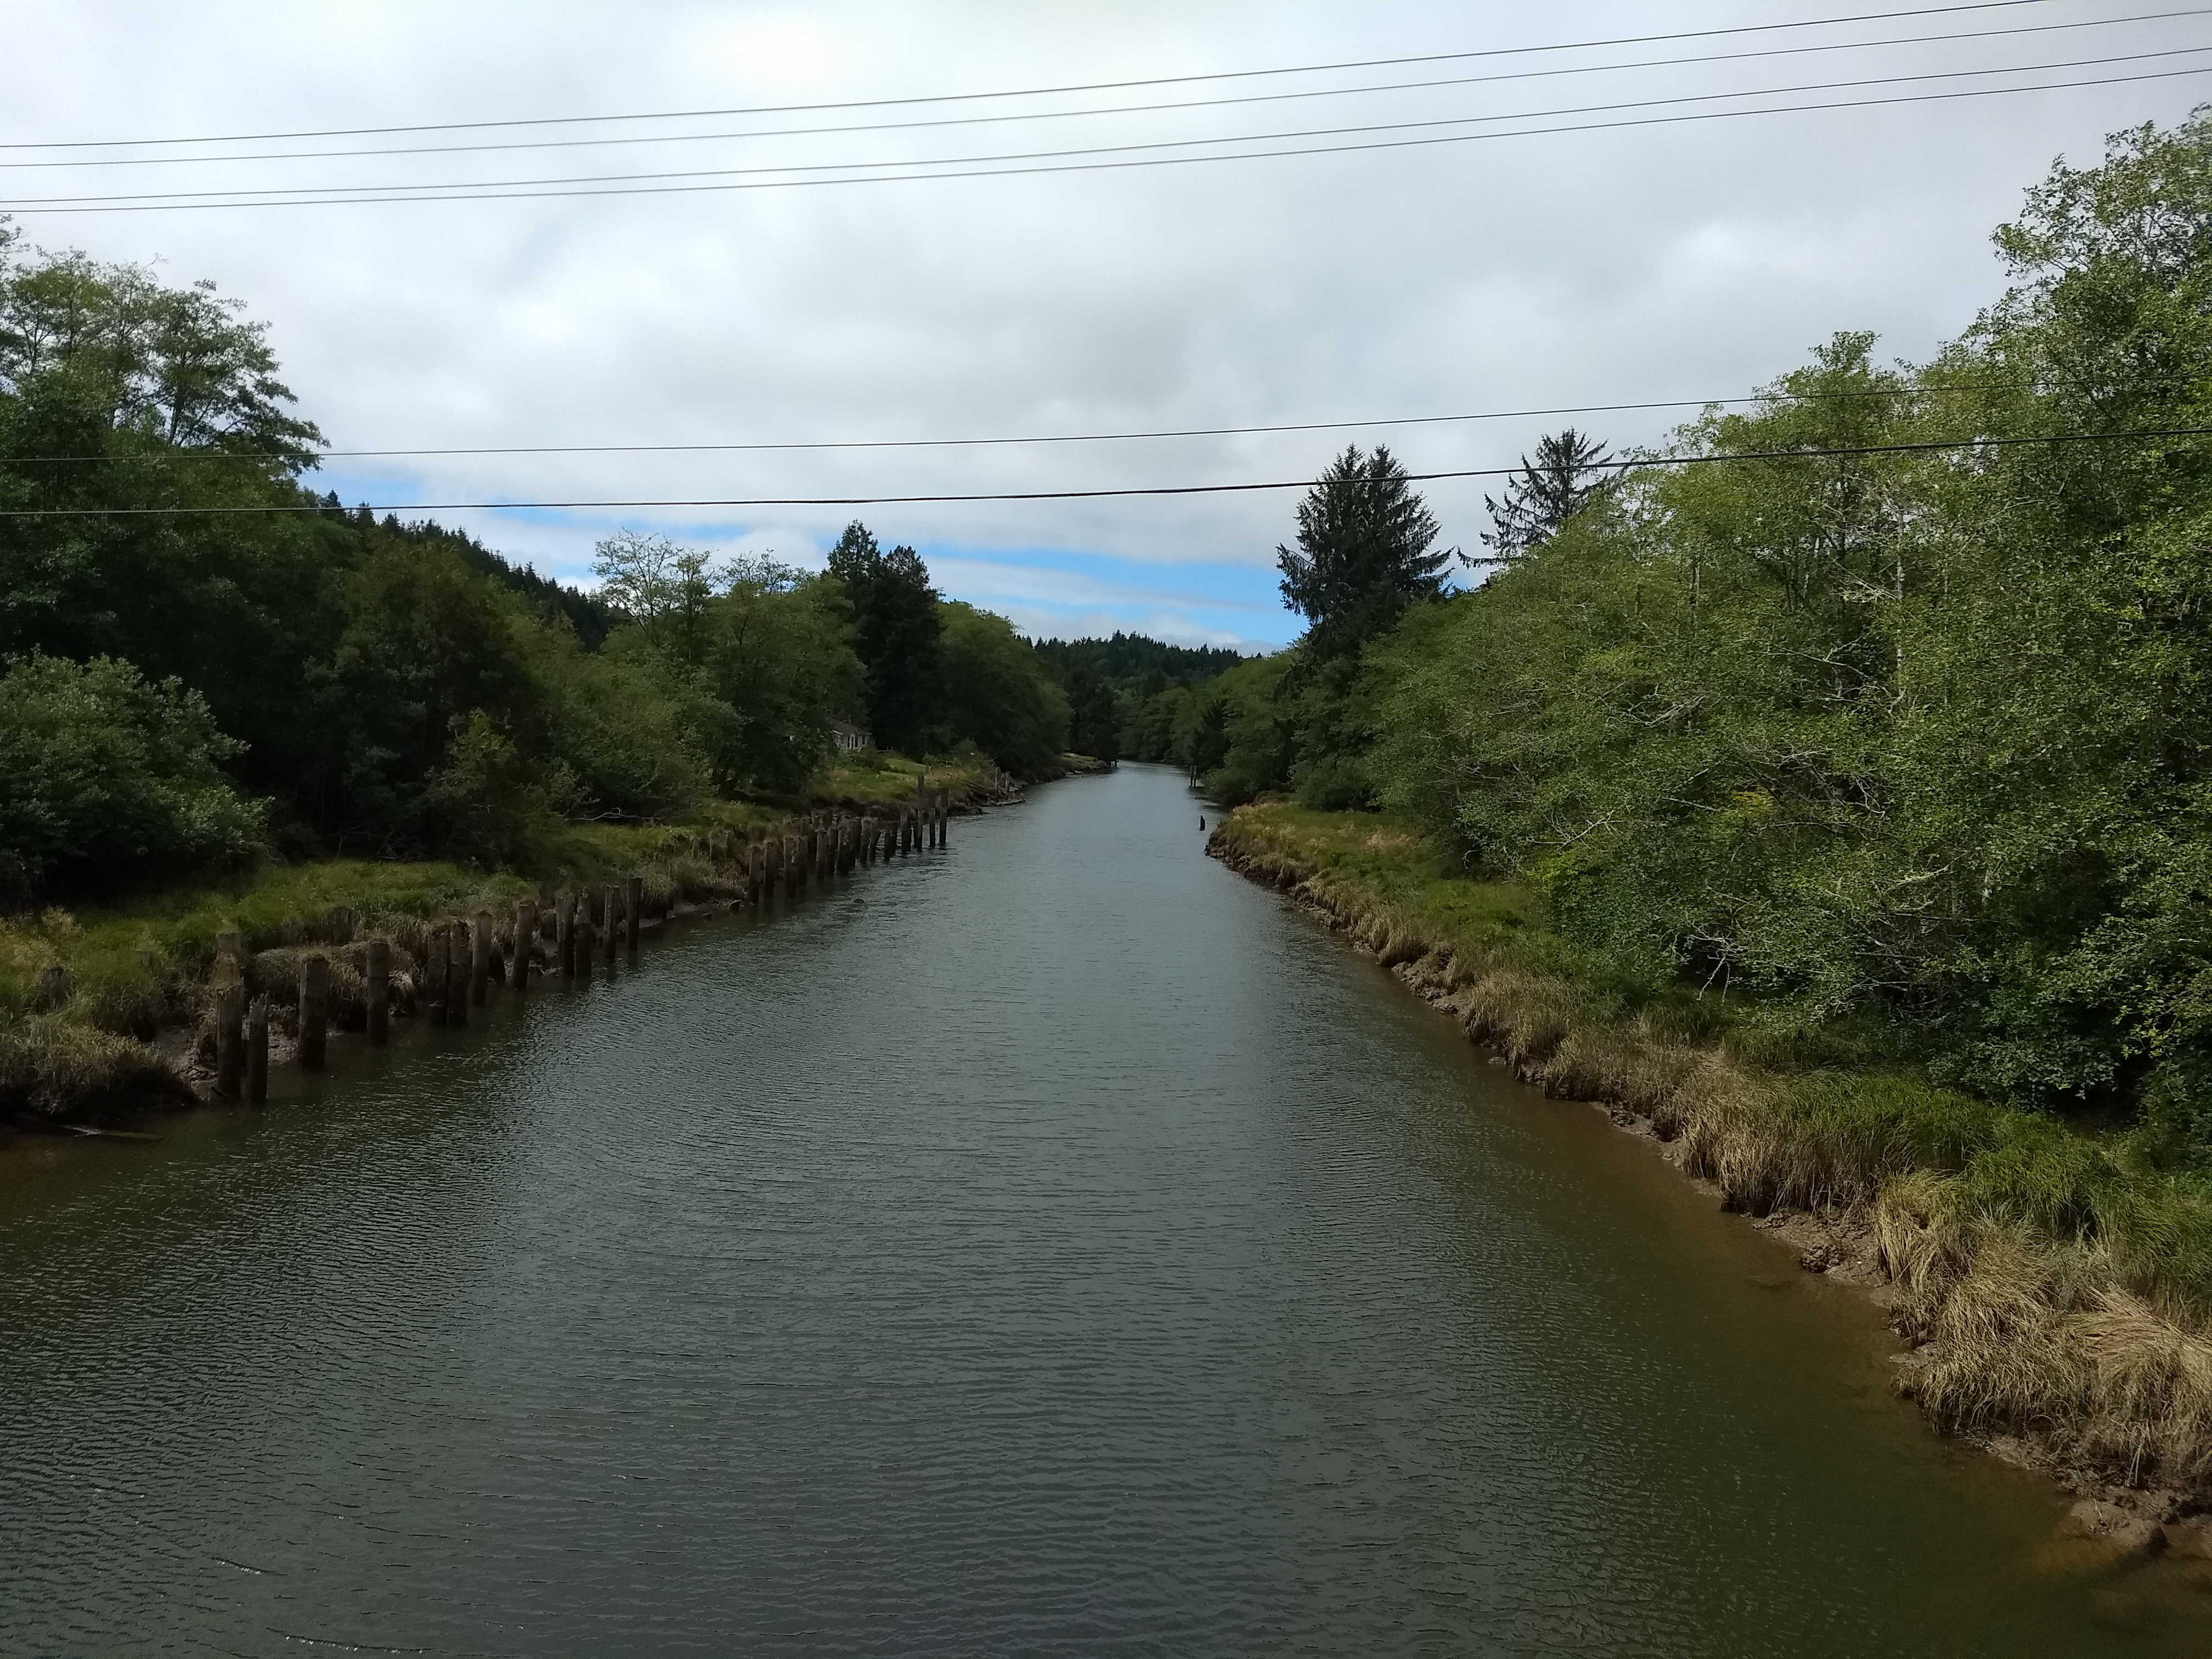 First Crossing of the Hoquiam River